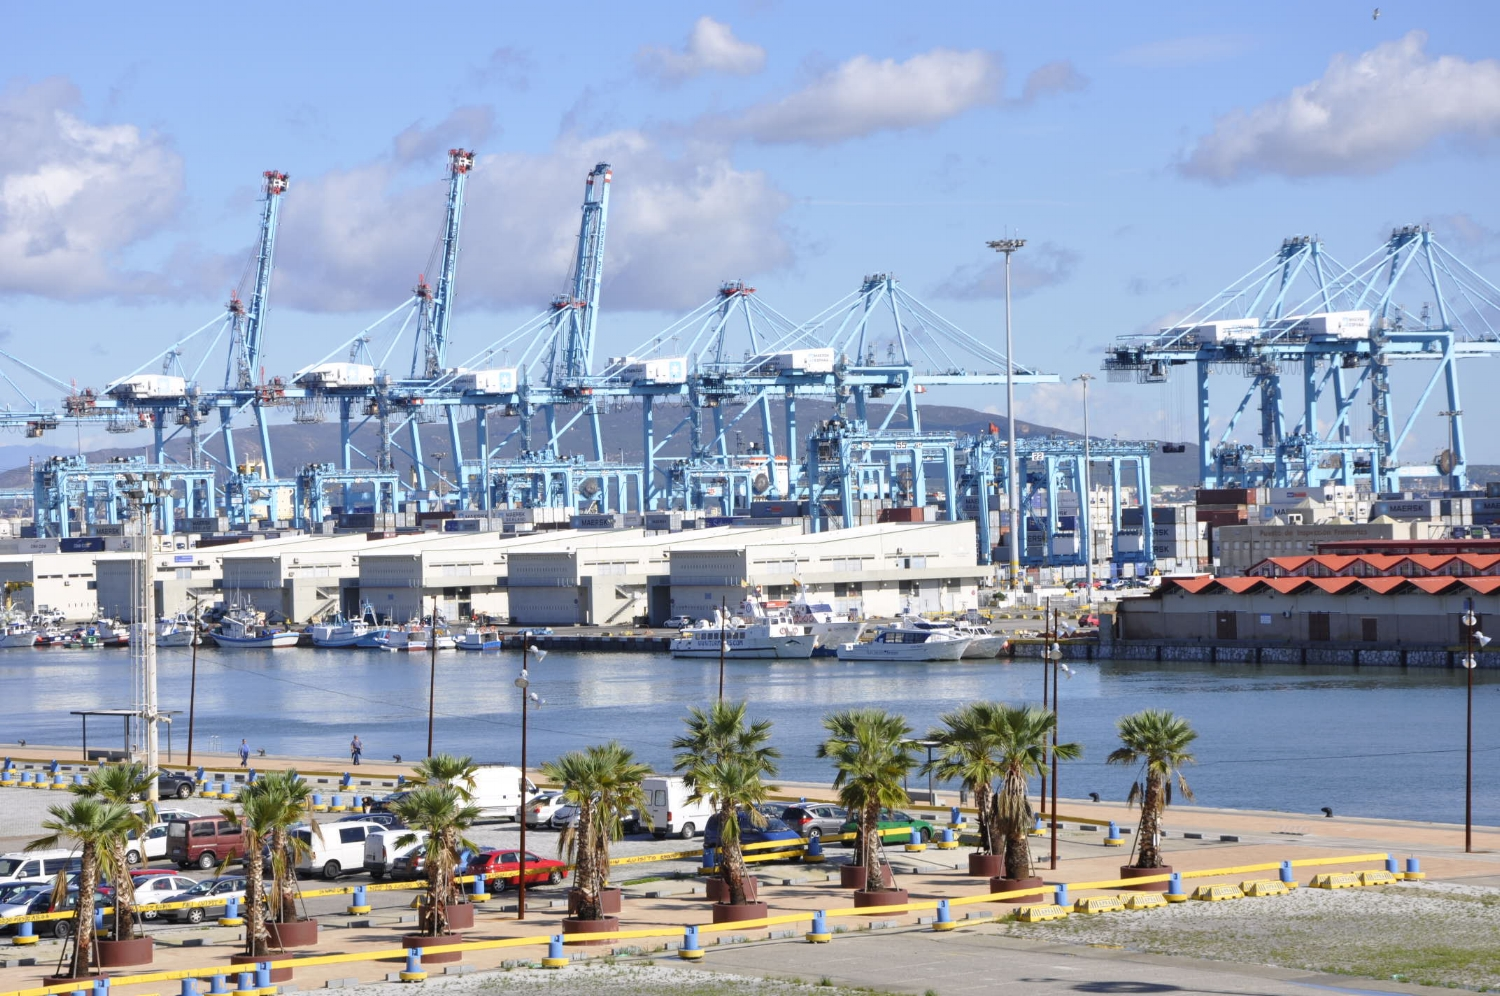 Even the port has its charms